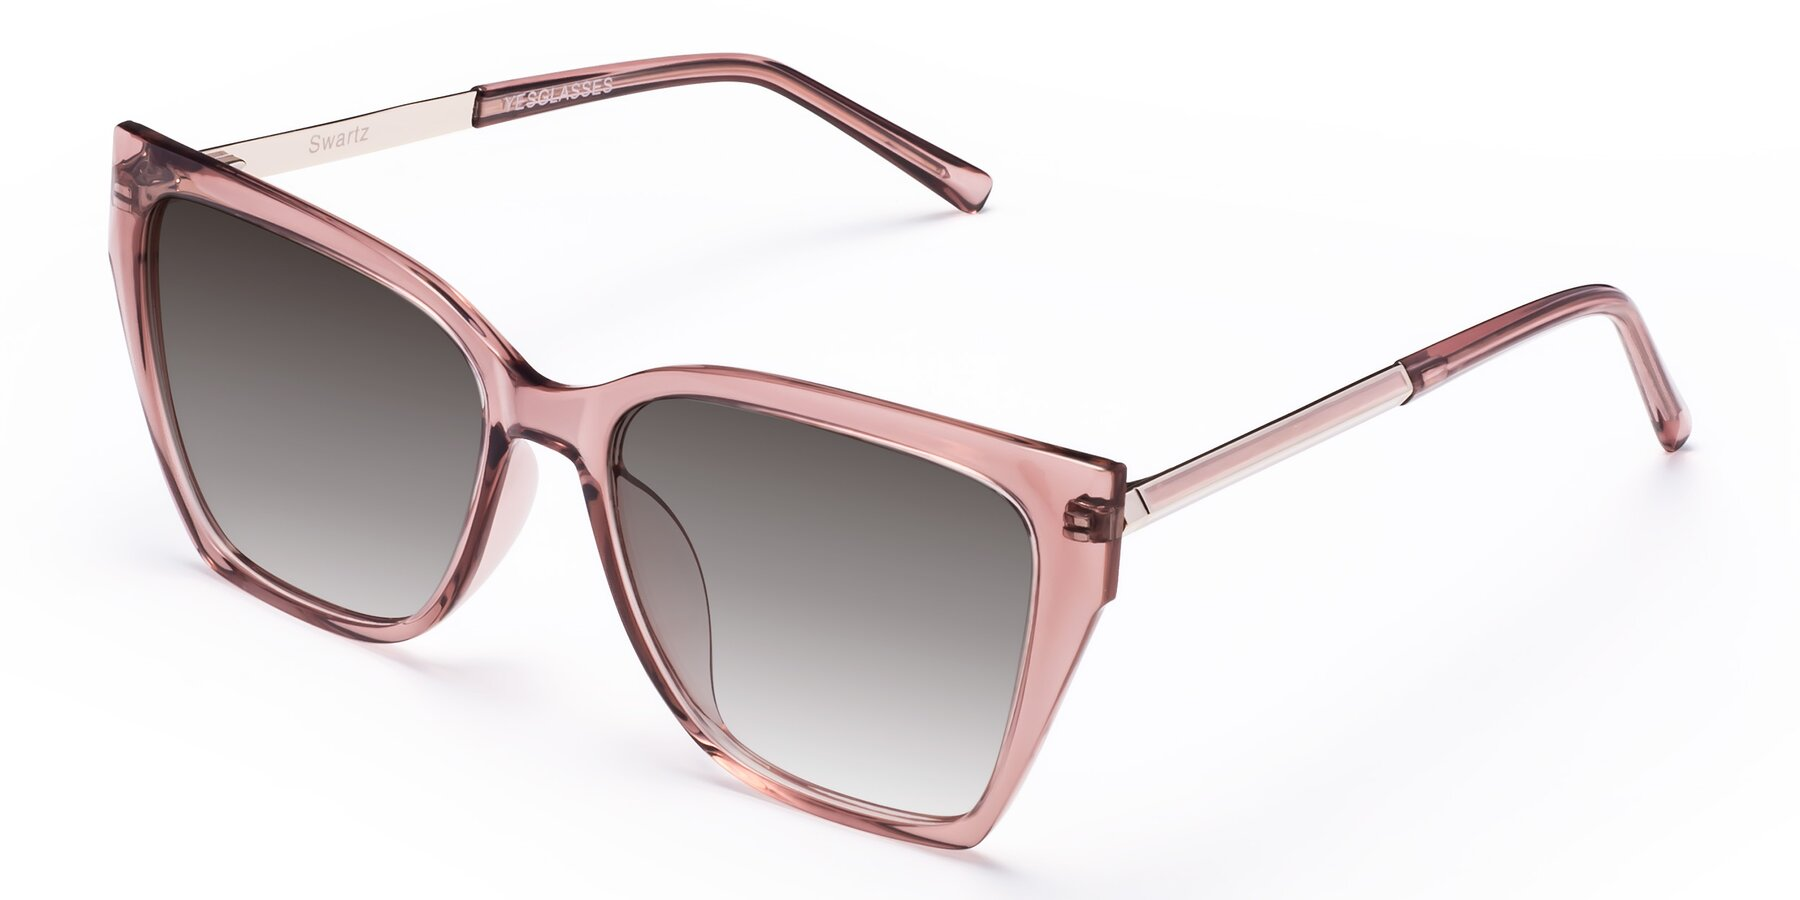 Angle of Swartz in Grape with Gray Gradient Lenses